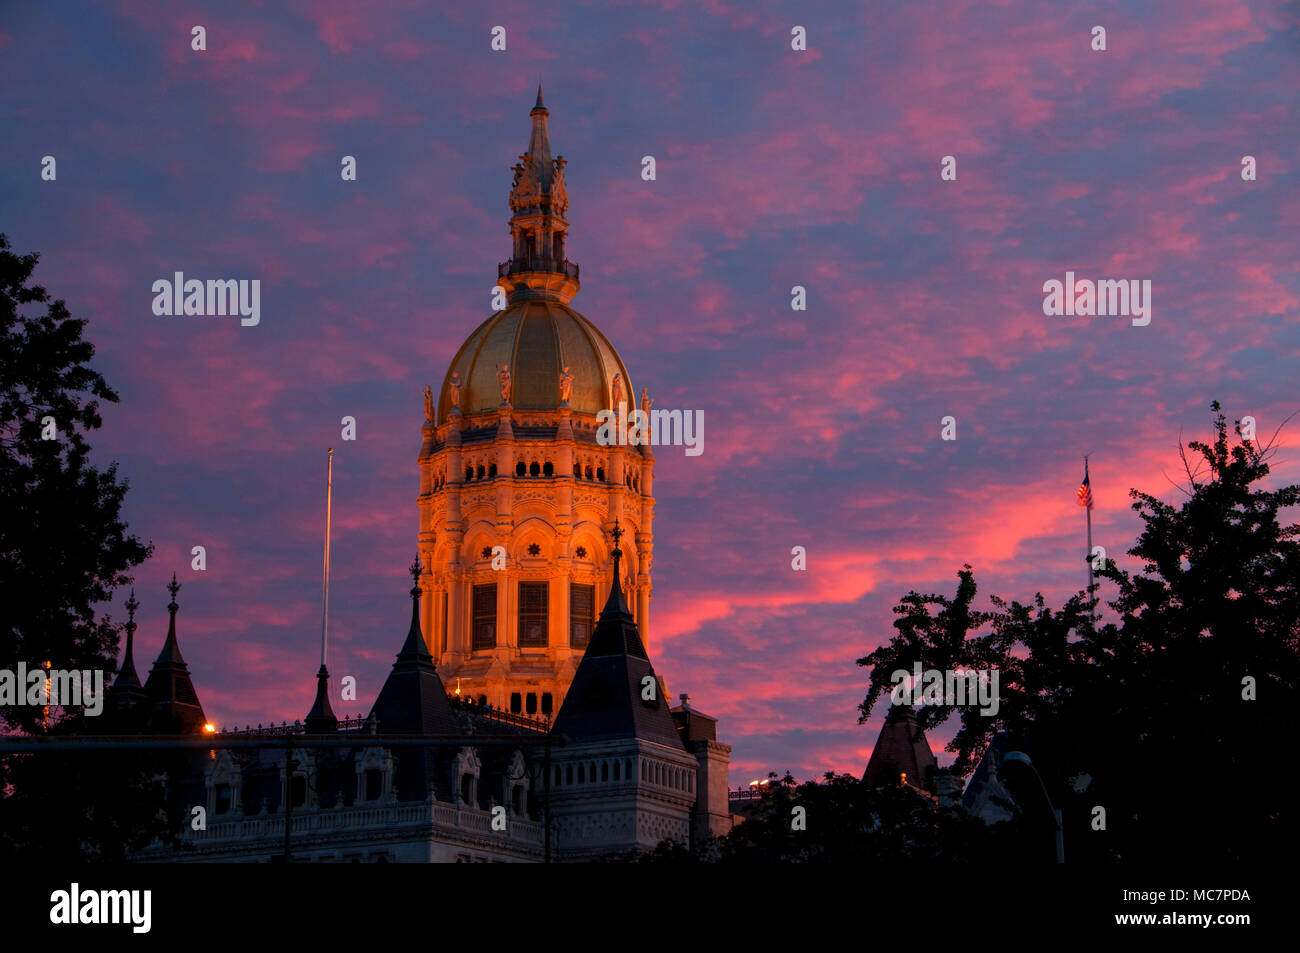 State Capitol dome sunset, Hartford, Connecticut - Stock Image